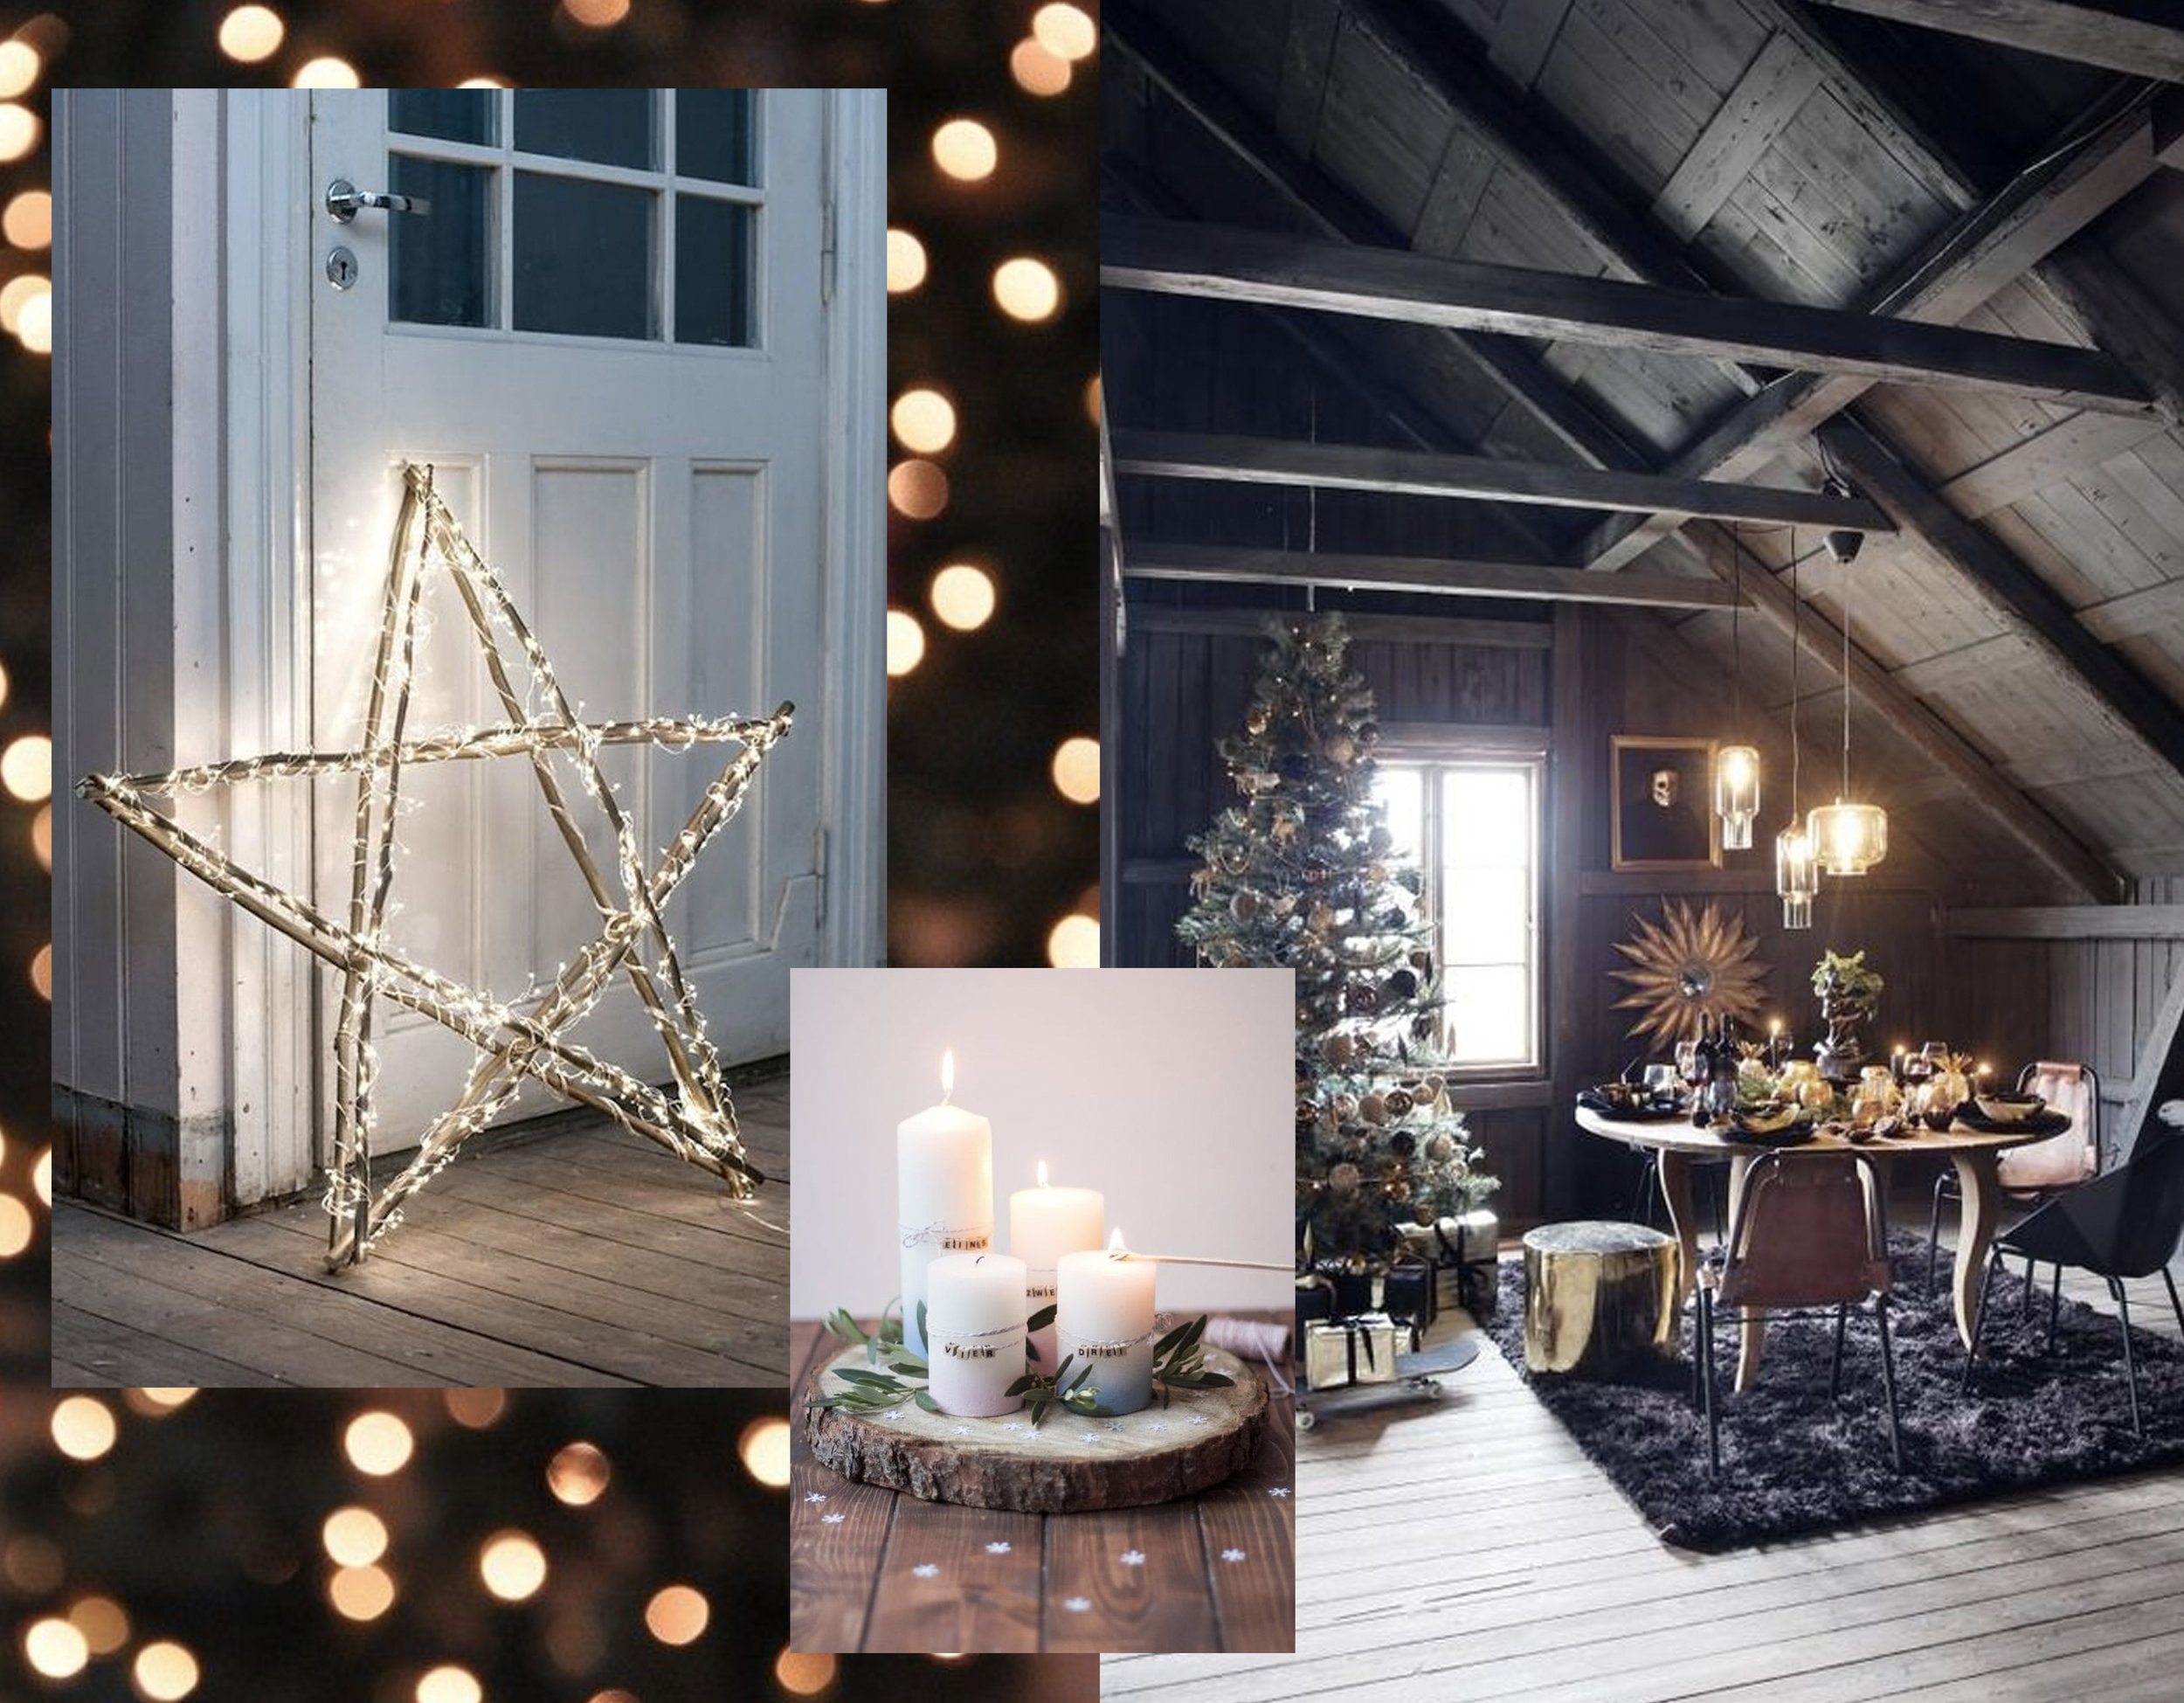 twinkling Christmas star vis  Brit + Co  - attic via  Turbulences Deco